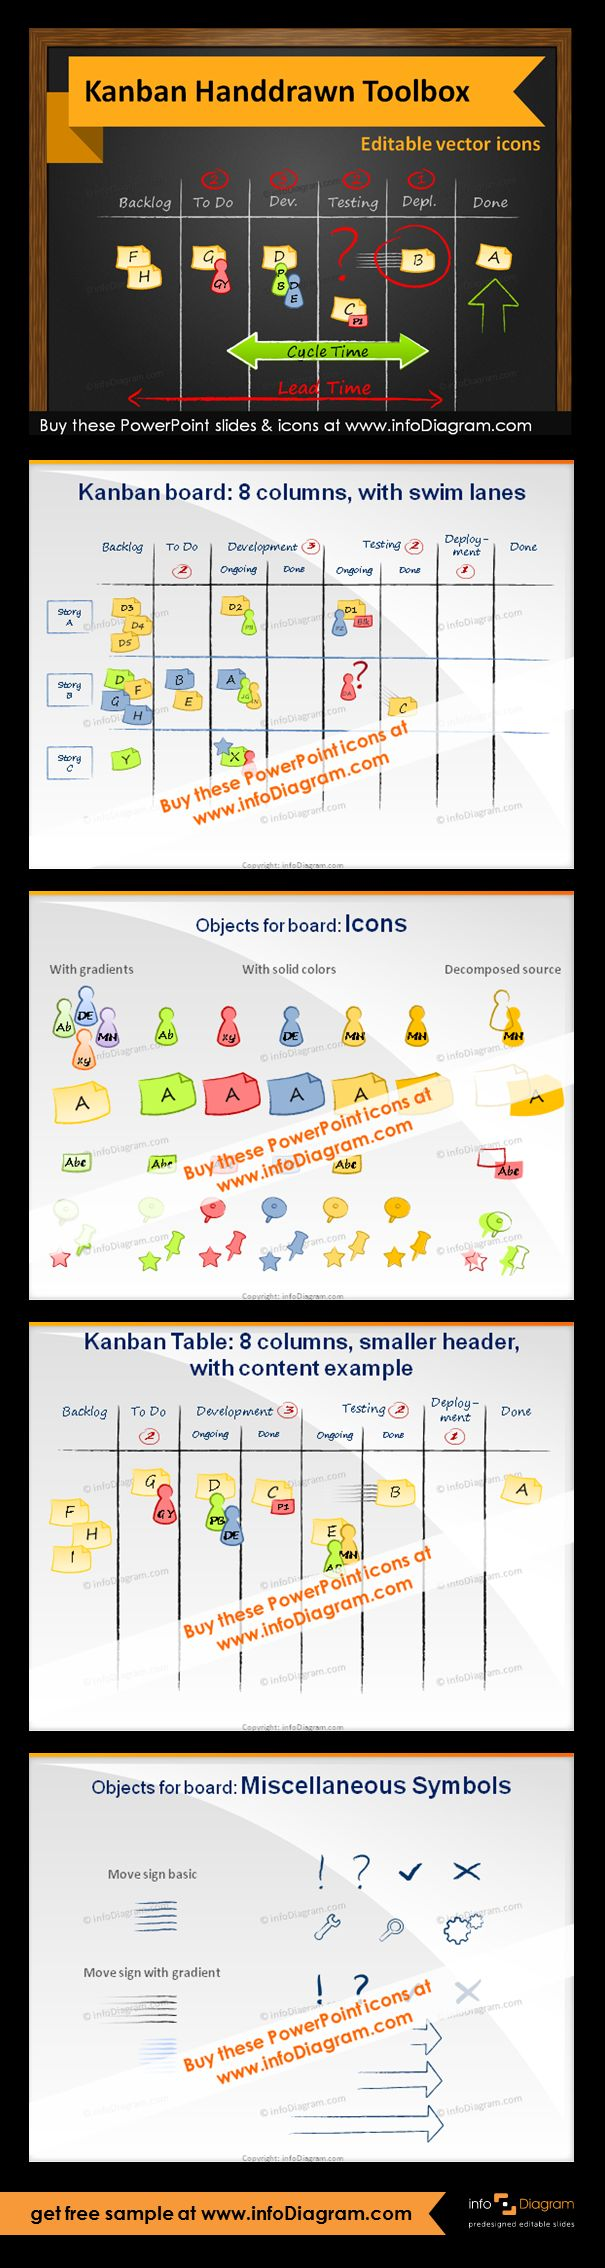 Editable Kanban board in PowerPoint with icons and prefedined tables. Pre-designed Kanban table: versions with 3 columns (To Do, Ongoing, Done), 4 columns (Backlog, To Do, Ongoing, Done) and 8 columns (Backlog, To Do, Development ... , Testing ..., Deployment, Done). Kanban specific icons: postit memo, team members, memo markers, pins, range. General shapes: arrows, lines, markers, move sign, miscellaneous symbols (Ok, Not Ok, In Progress, Analyze, Repair). Fully editable style.